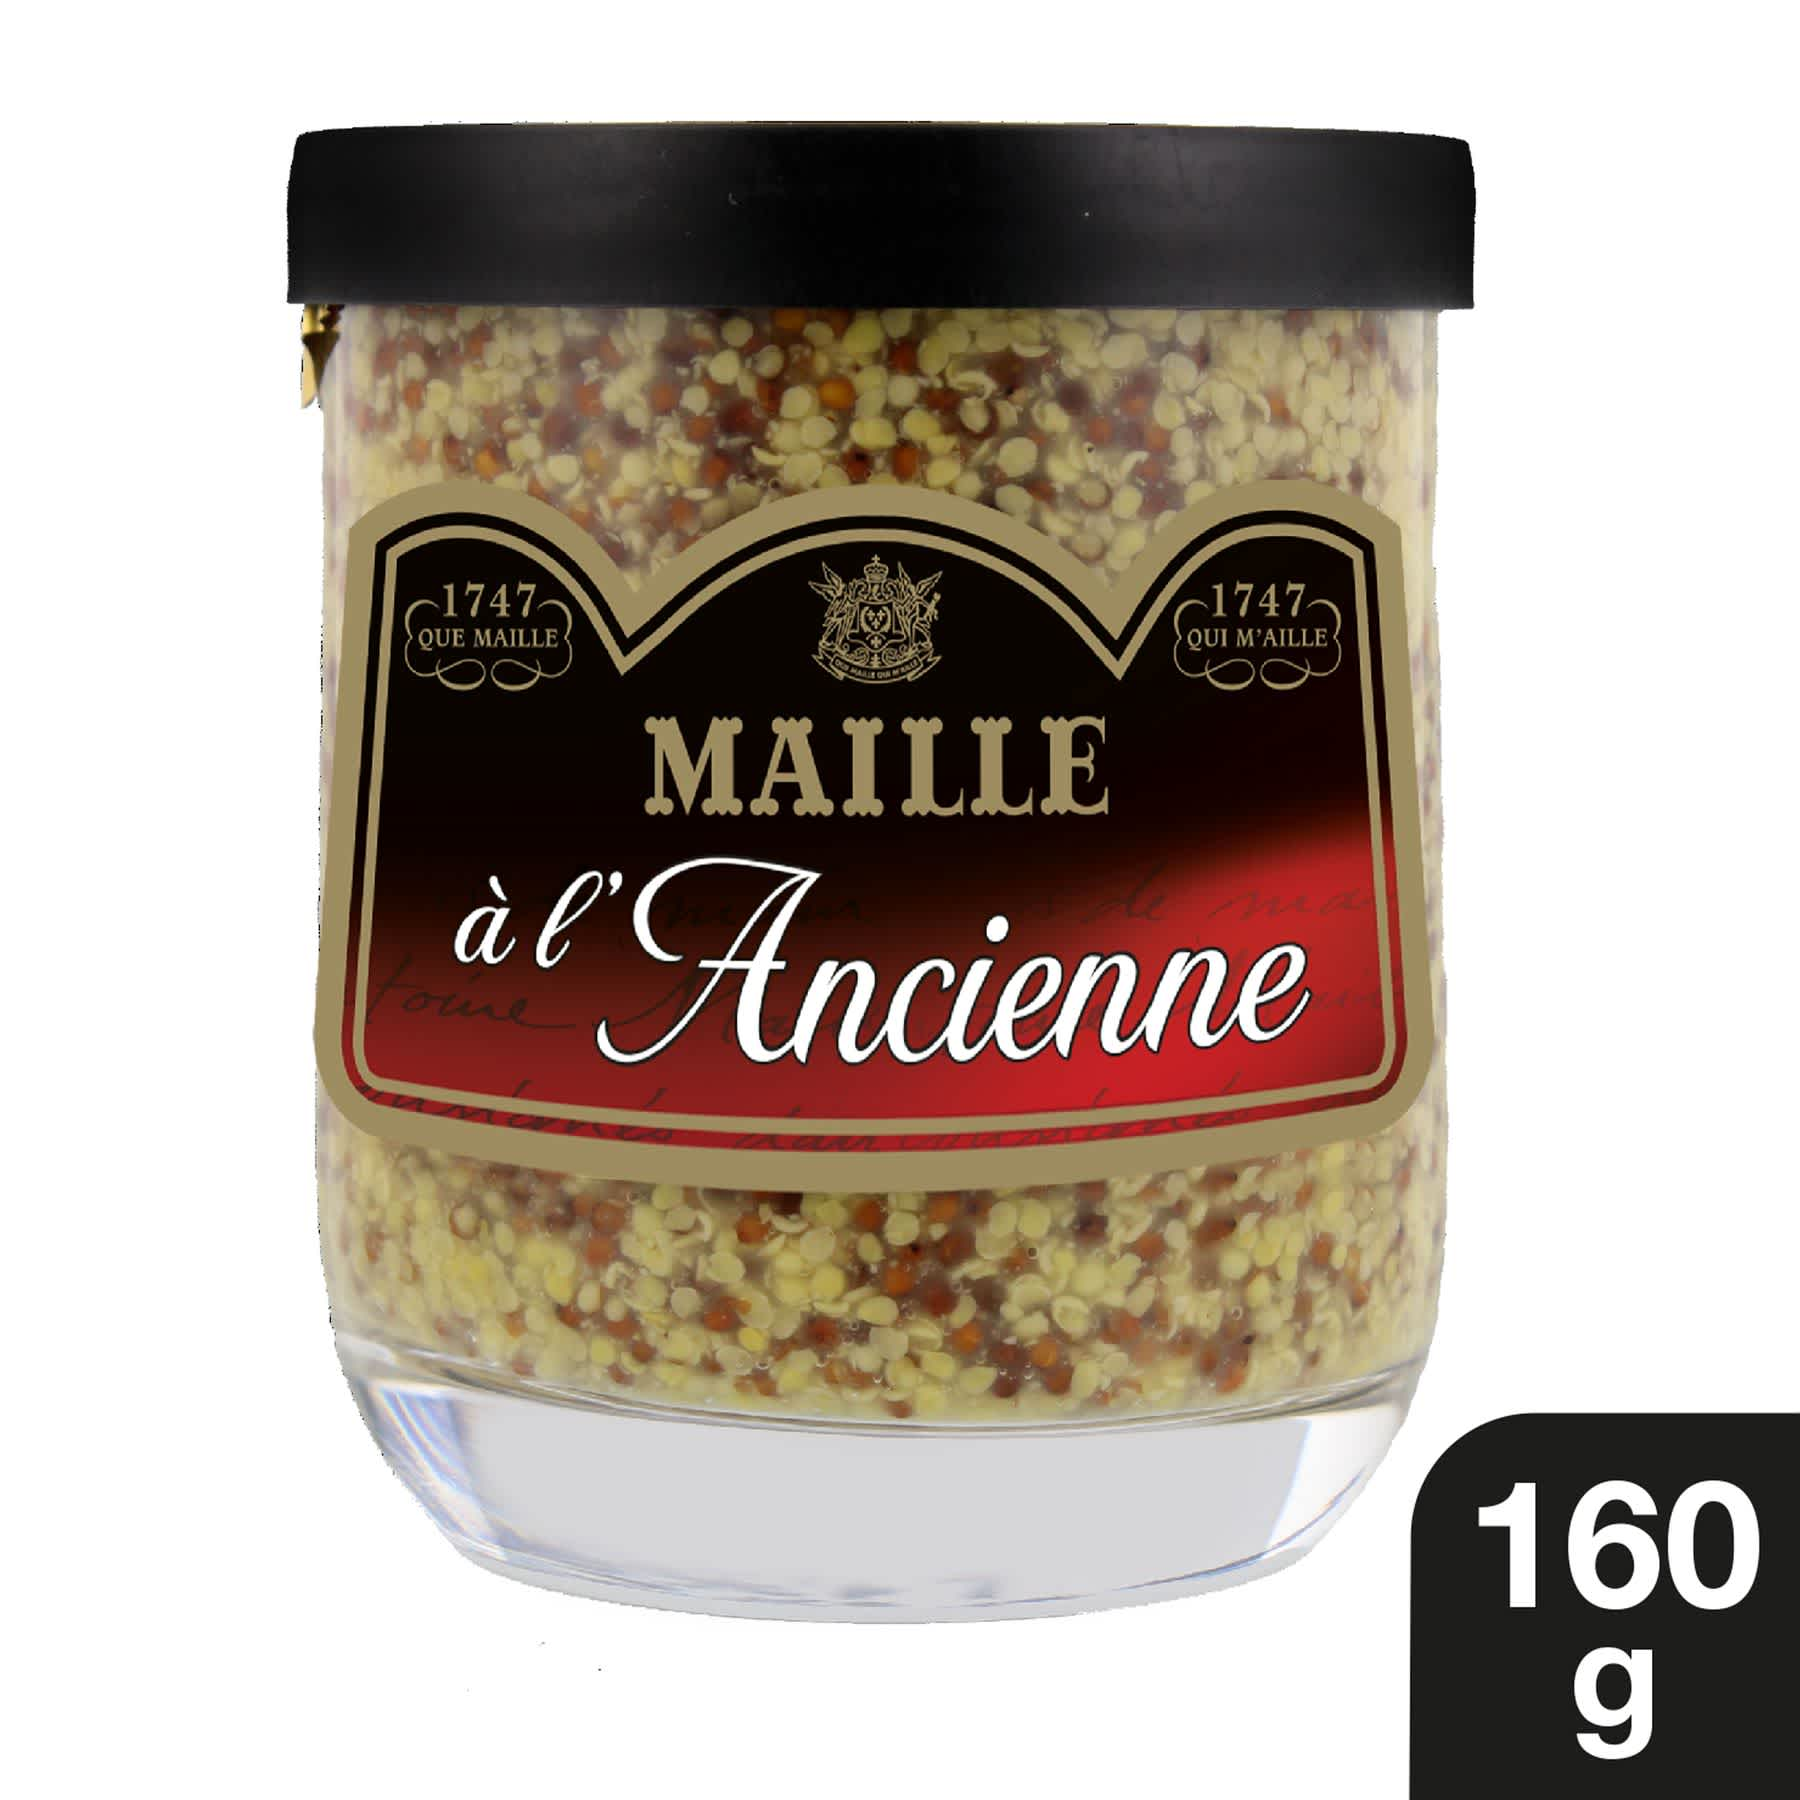 Maille Moutarde a l Ancienne Verrine 160g 1